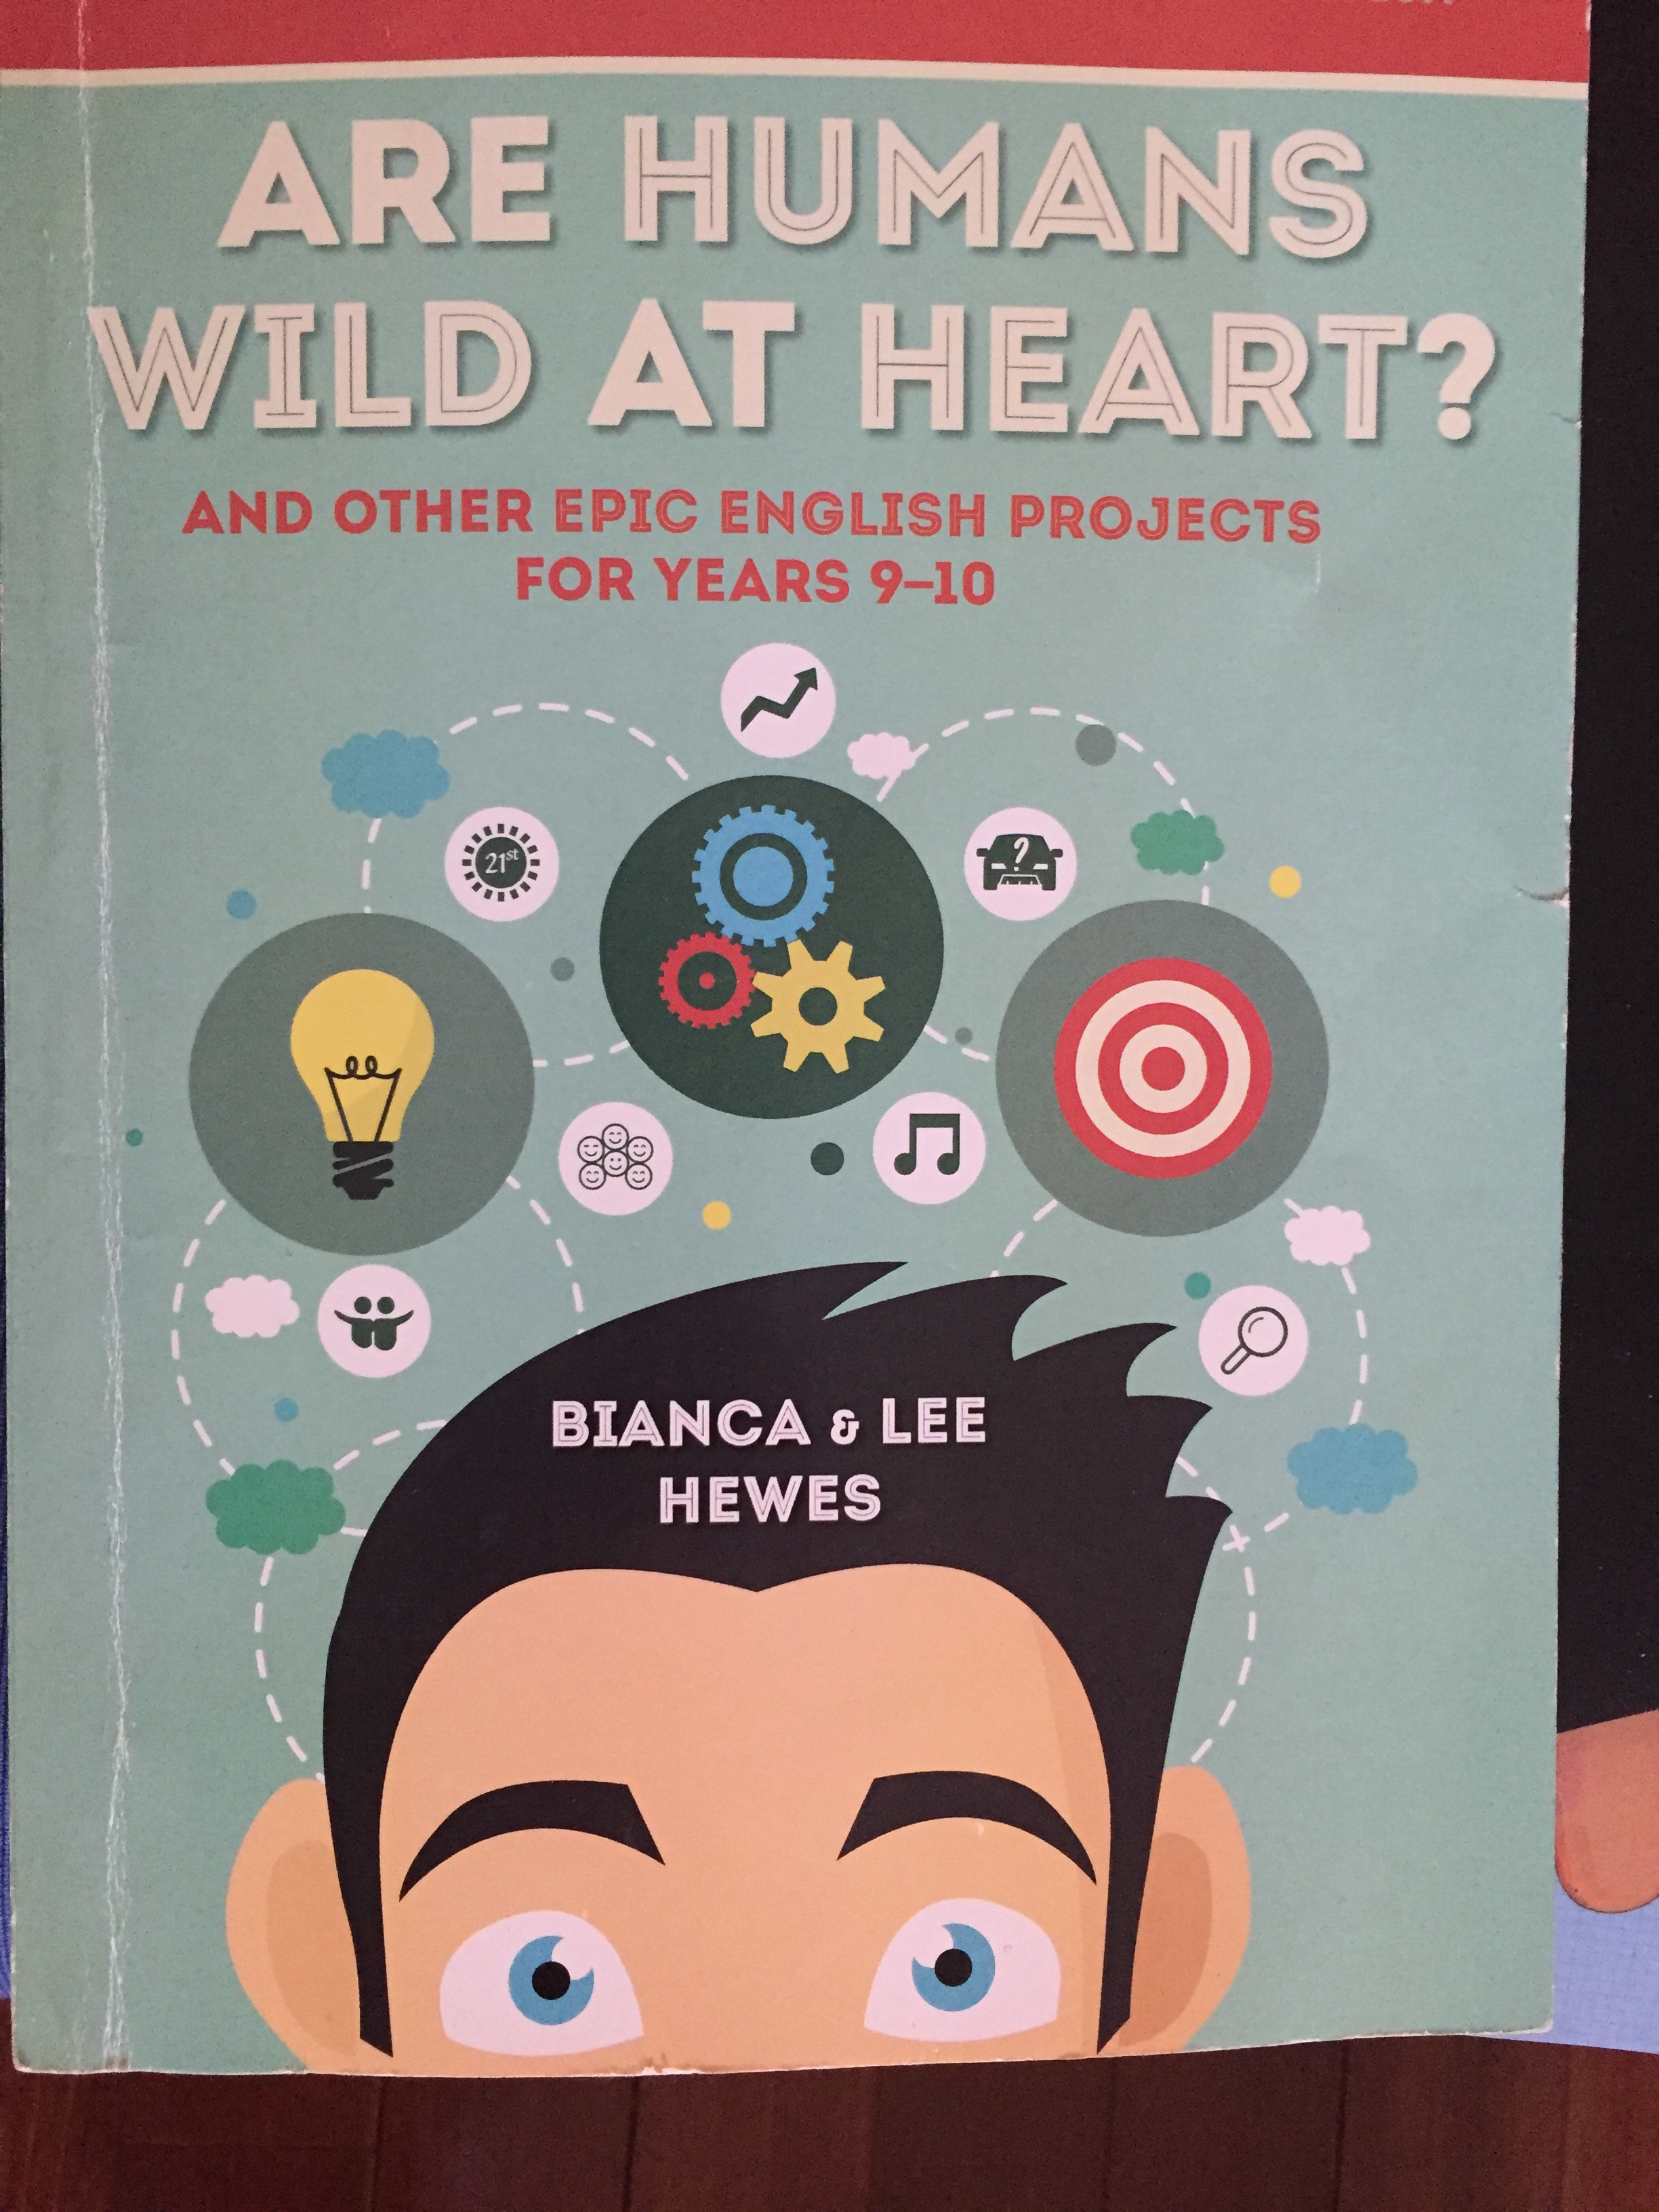 A photo of the front cover of Bianca and Lee Hewes' book, 'Are Humans Wild at Heart?'